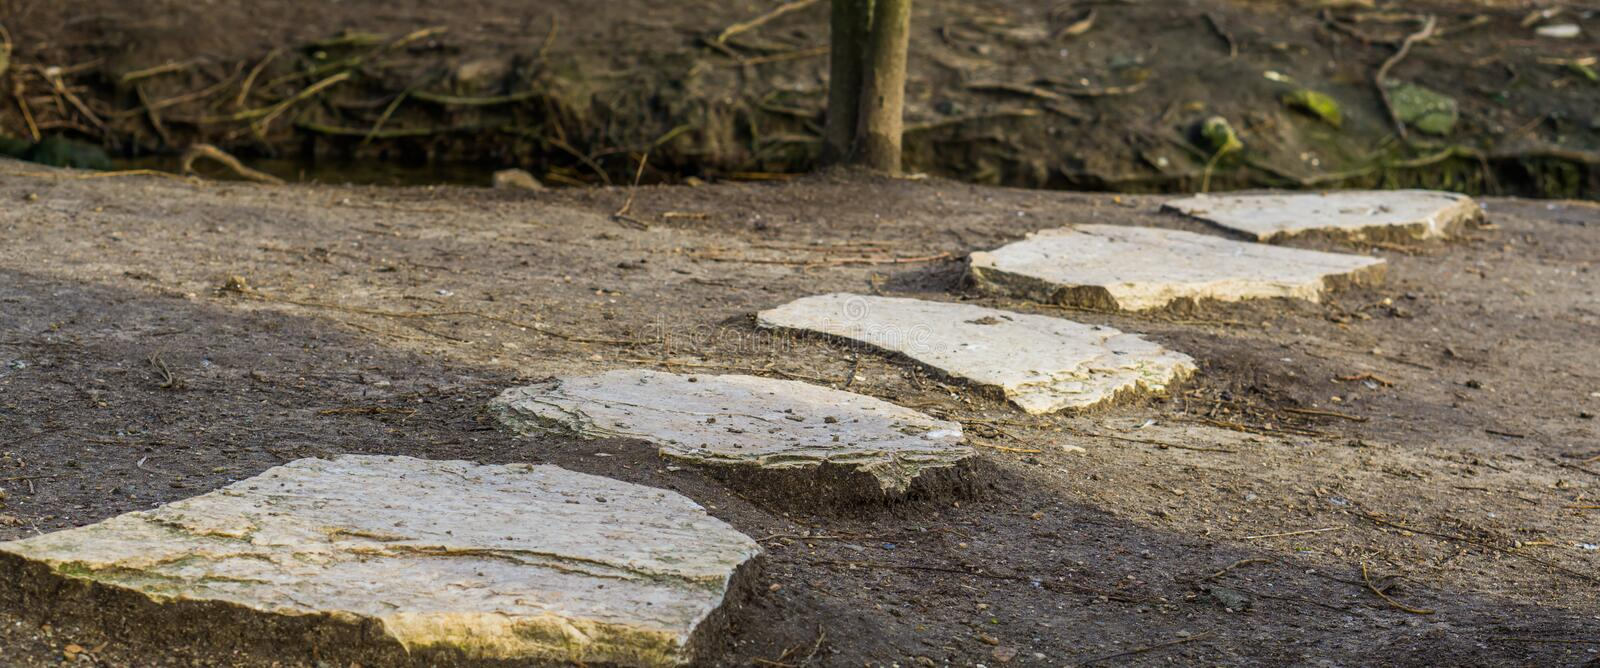 Walking path made of big stones, Garden or nature decorations and architecture royalty free stock photography